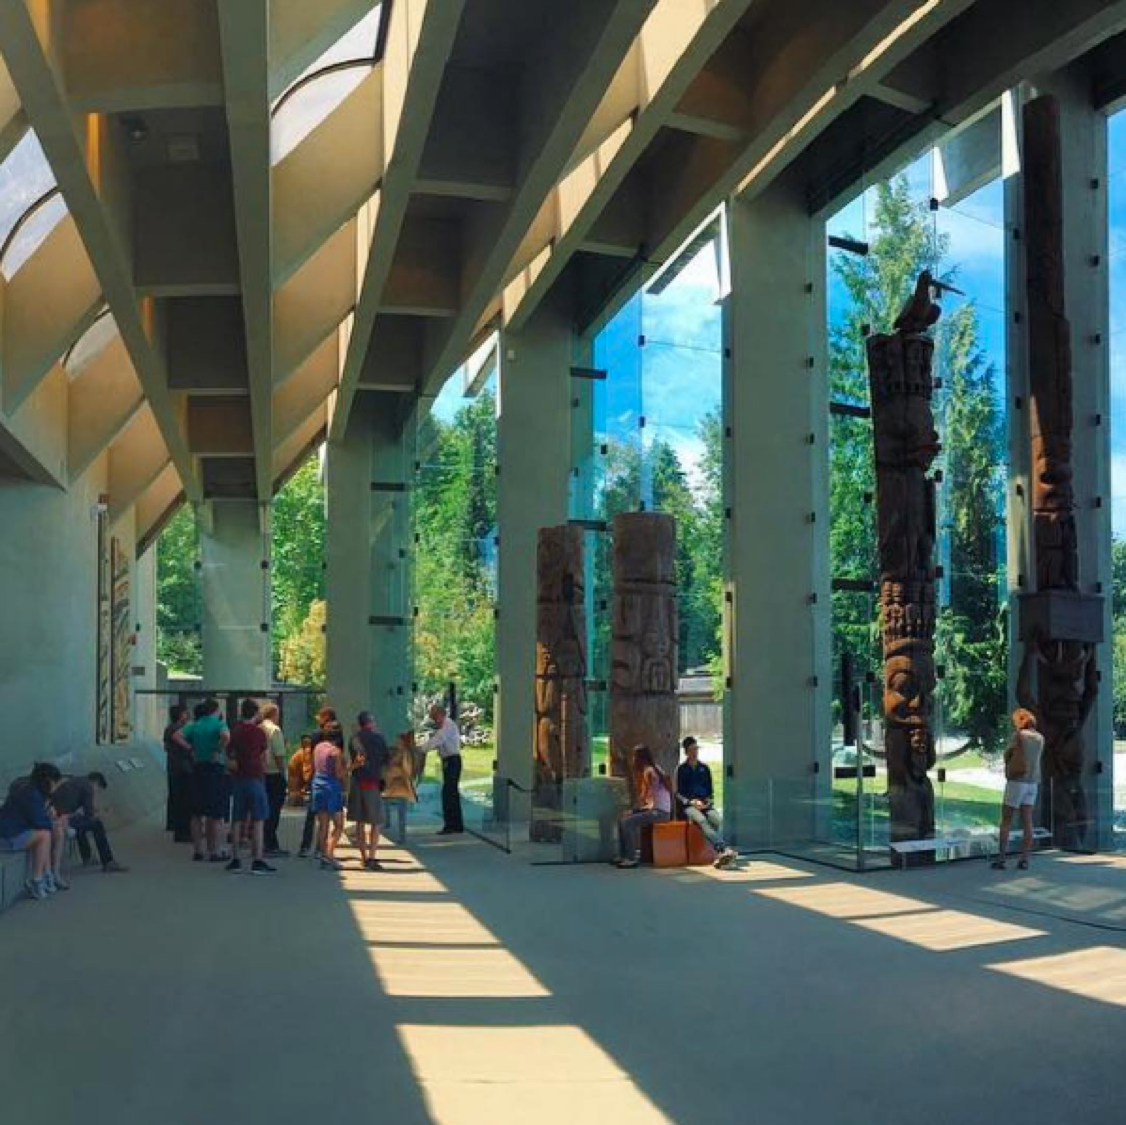 Sun's out @moa_ubc The Museum of Anthropology tells amazing stories about #FirstNation people through exhibits about their art.   #Repost @fleex3 #UBC #yvr